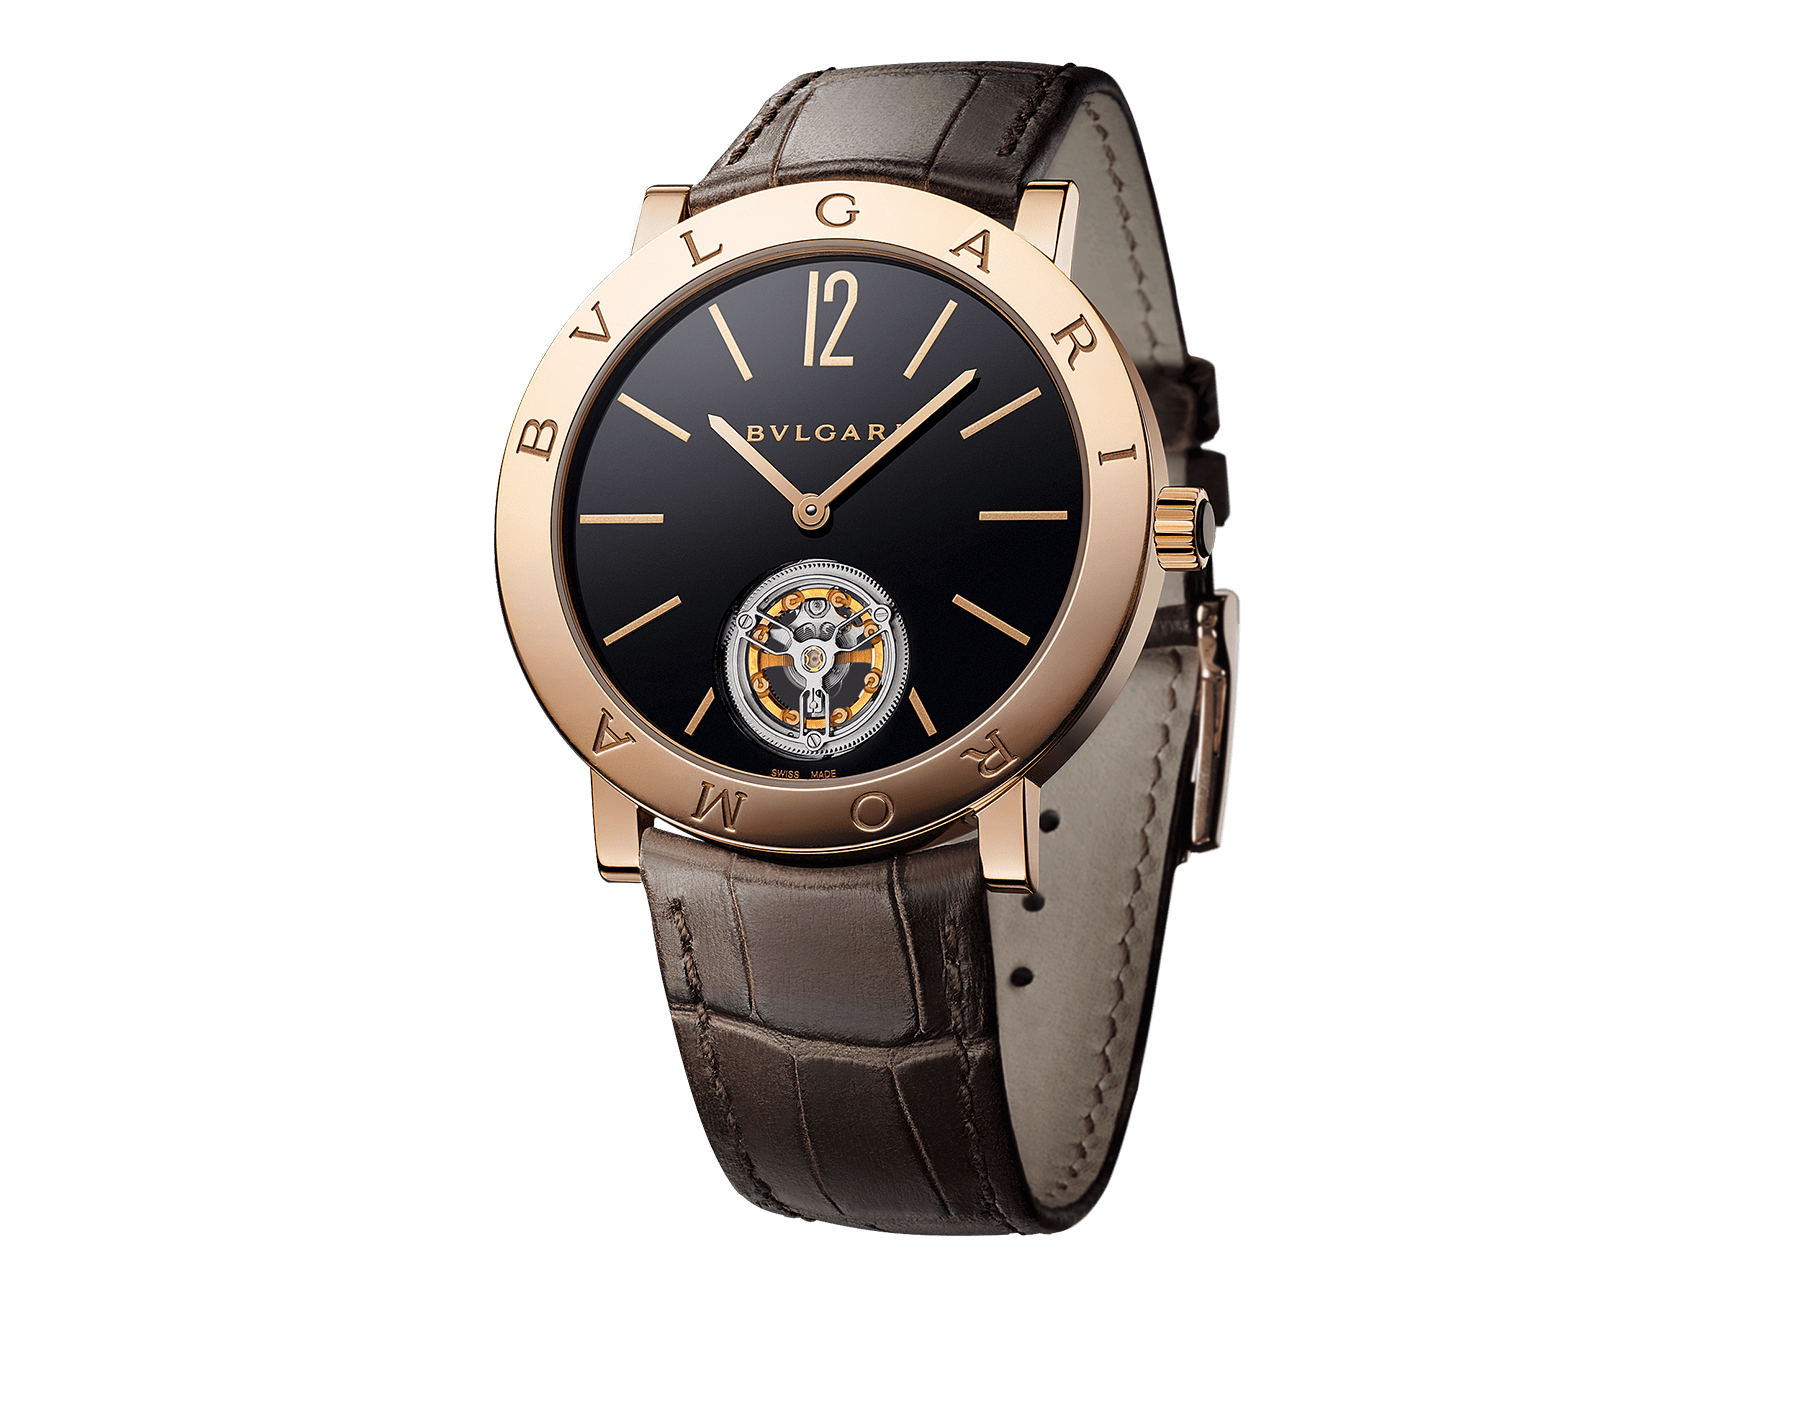 BVLGARI ROMA Finissimo Tourbillon watch with mechanical movement, manual winding and ball-bearing system, 18 kt rose gold case, black lacquered dial with tourbillon see-through opening and brown alligator bracelet 102362 image 1